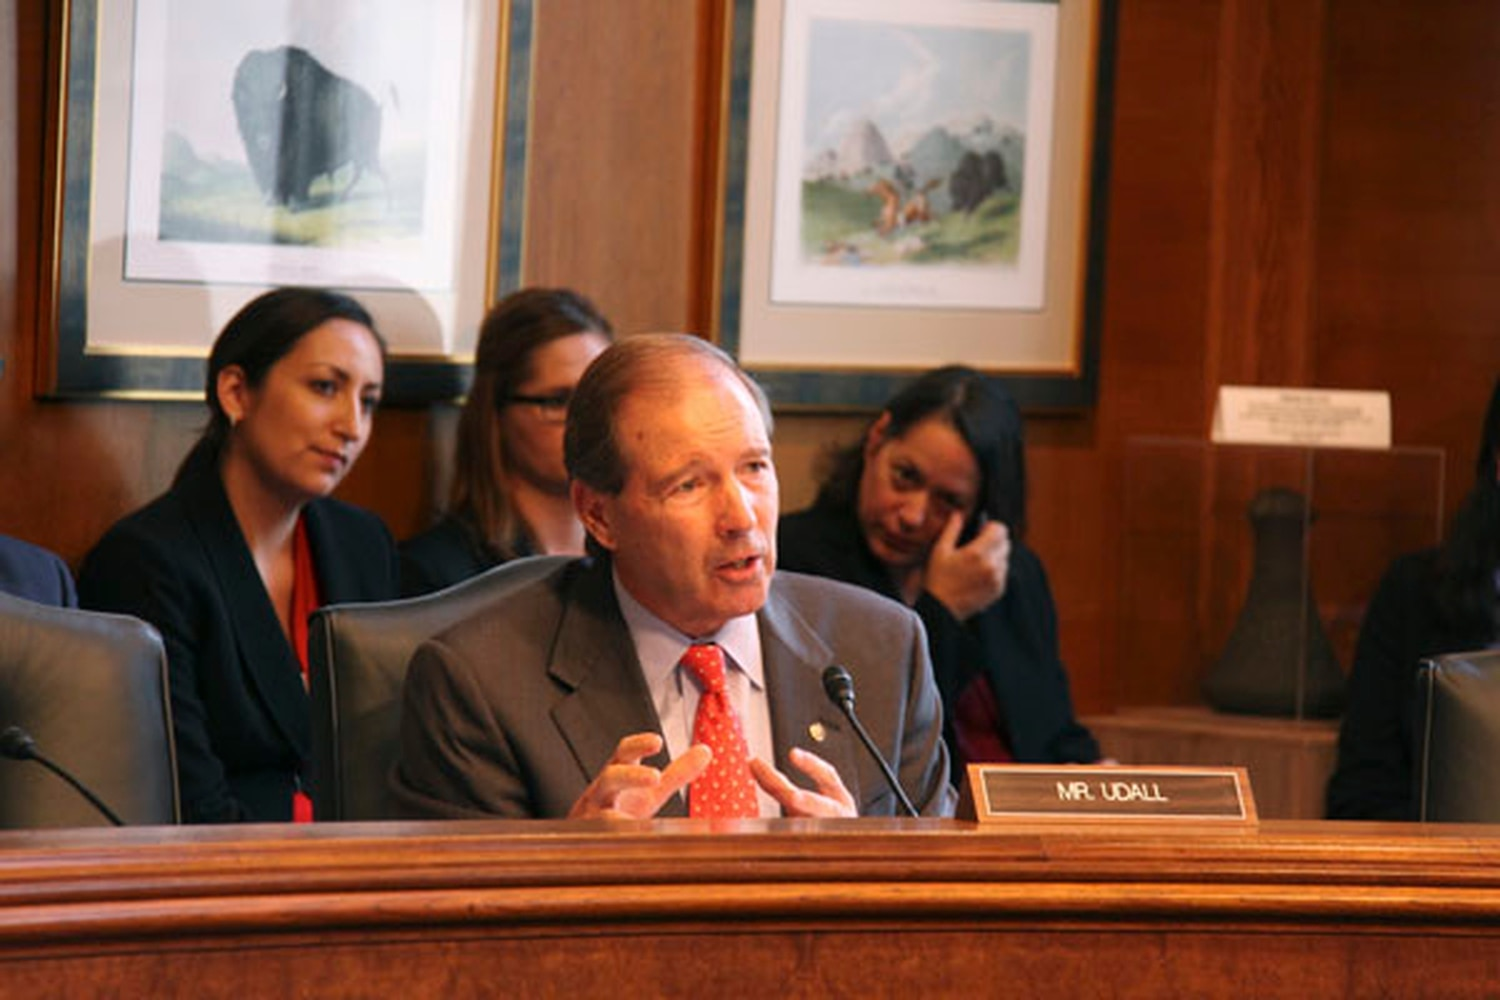 US Sen. Tom Udall, D-NM, testifies at the confirmation hearing for former University of New Mexico Law School Dean Kevin Washburn as assistant secretary for Indian Affairs at the US Department of the Interior.